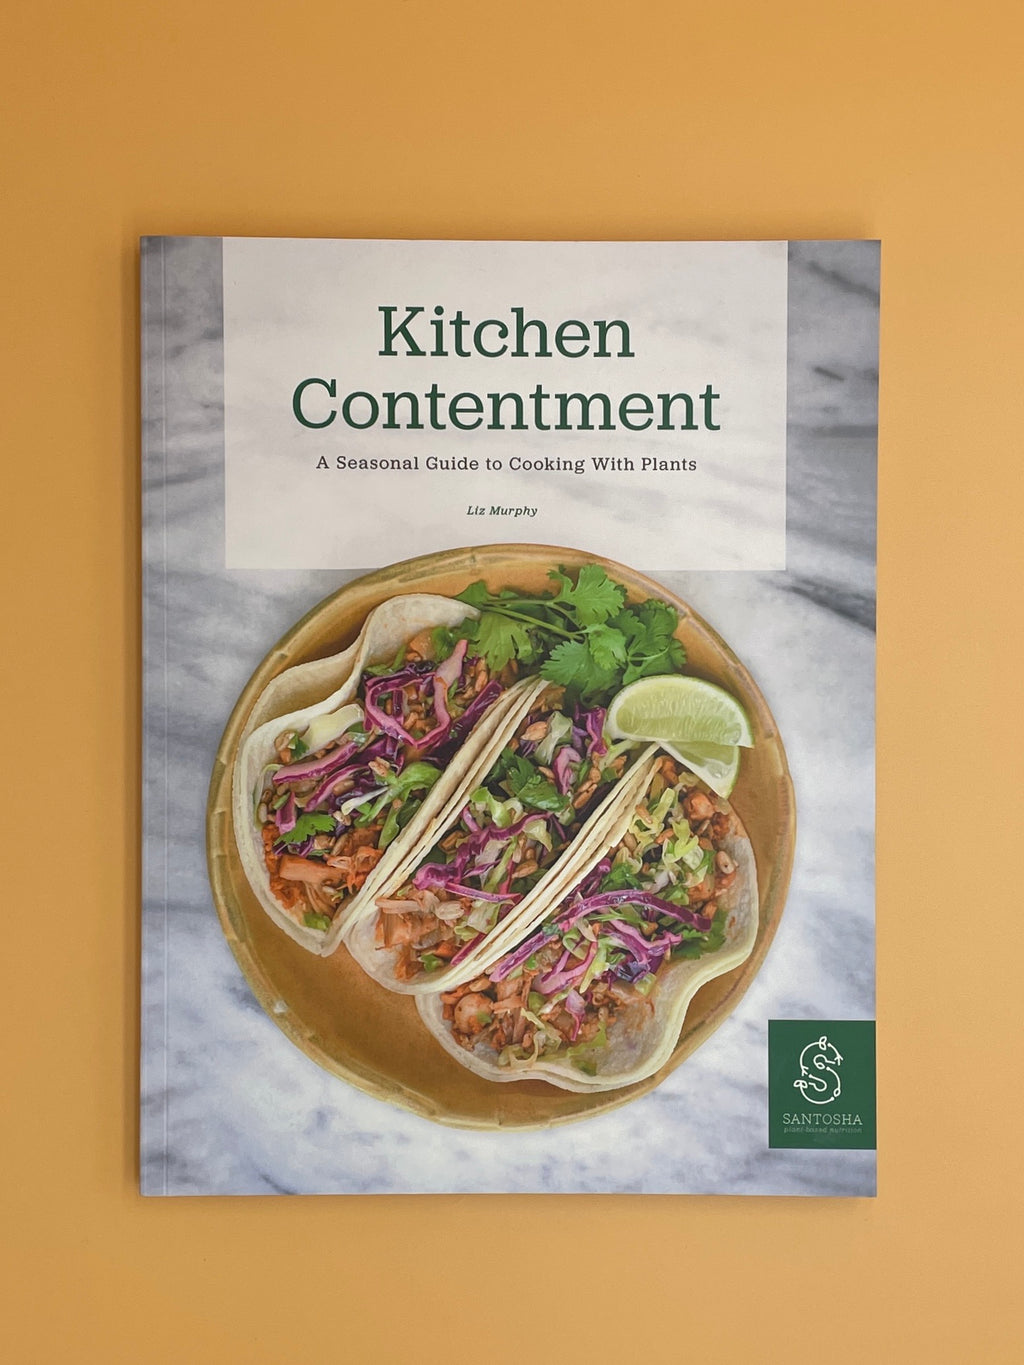 Kitchen Contentment: A Seasonal Guide to Cooking With Plants (Liz Murphy)